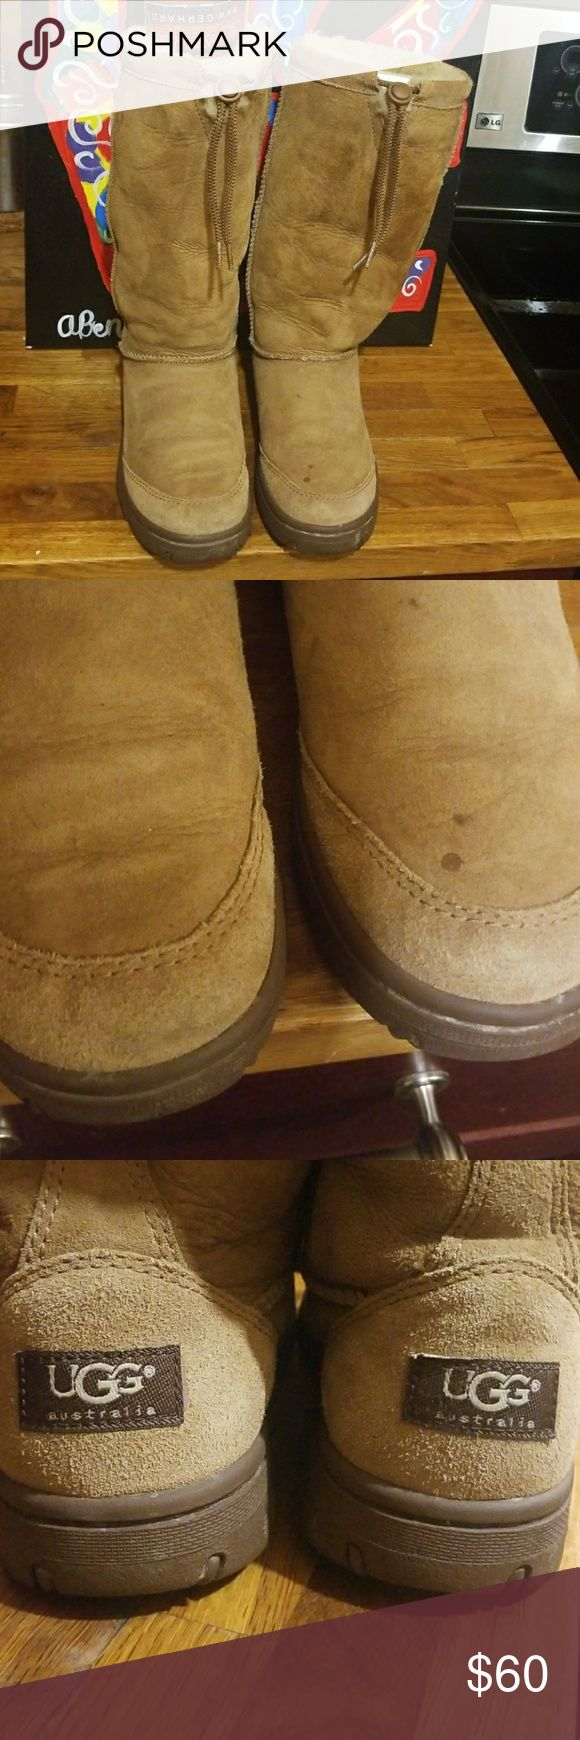 Authentic Original UGG BOOTS .SIZE 7 🍋🍋THESE BOOTS WILL LAST 4EVA...Super warm thick uggs ..heavy duty SOLES. Hardly worn by my sister . SHE GOT THEM LAST XMAS..from Glammom...But she wanted PINK UGGS ..SO SHE ONLY WORE A FEW TIMES ..WHEN SHE WENT TO VISIT  HER🙄 UGG Shoes